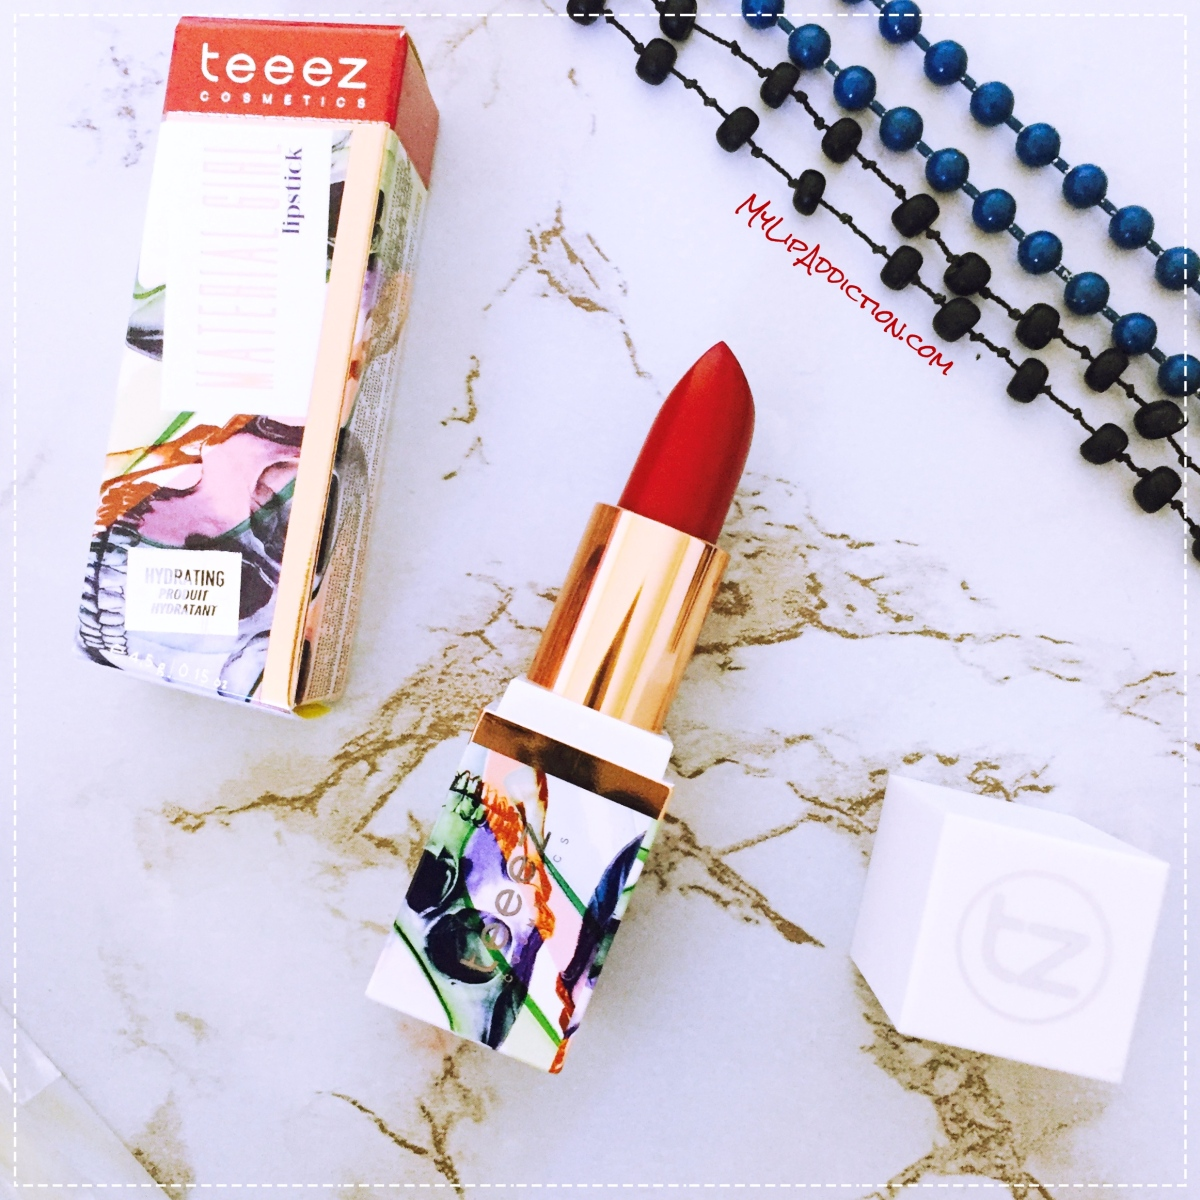 Teeez Cosmetics - Material Girl Lipstick - A review - MyLipAddiction.com